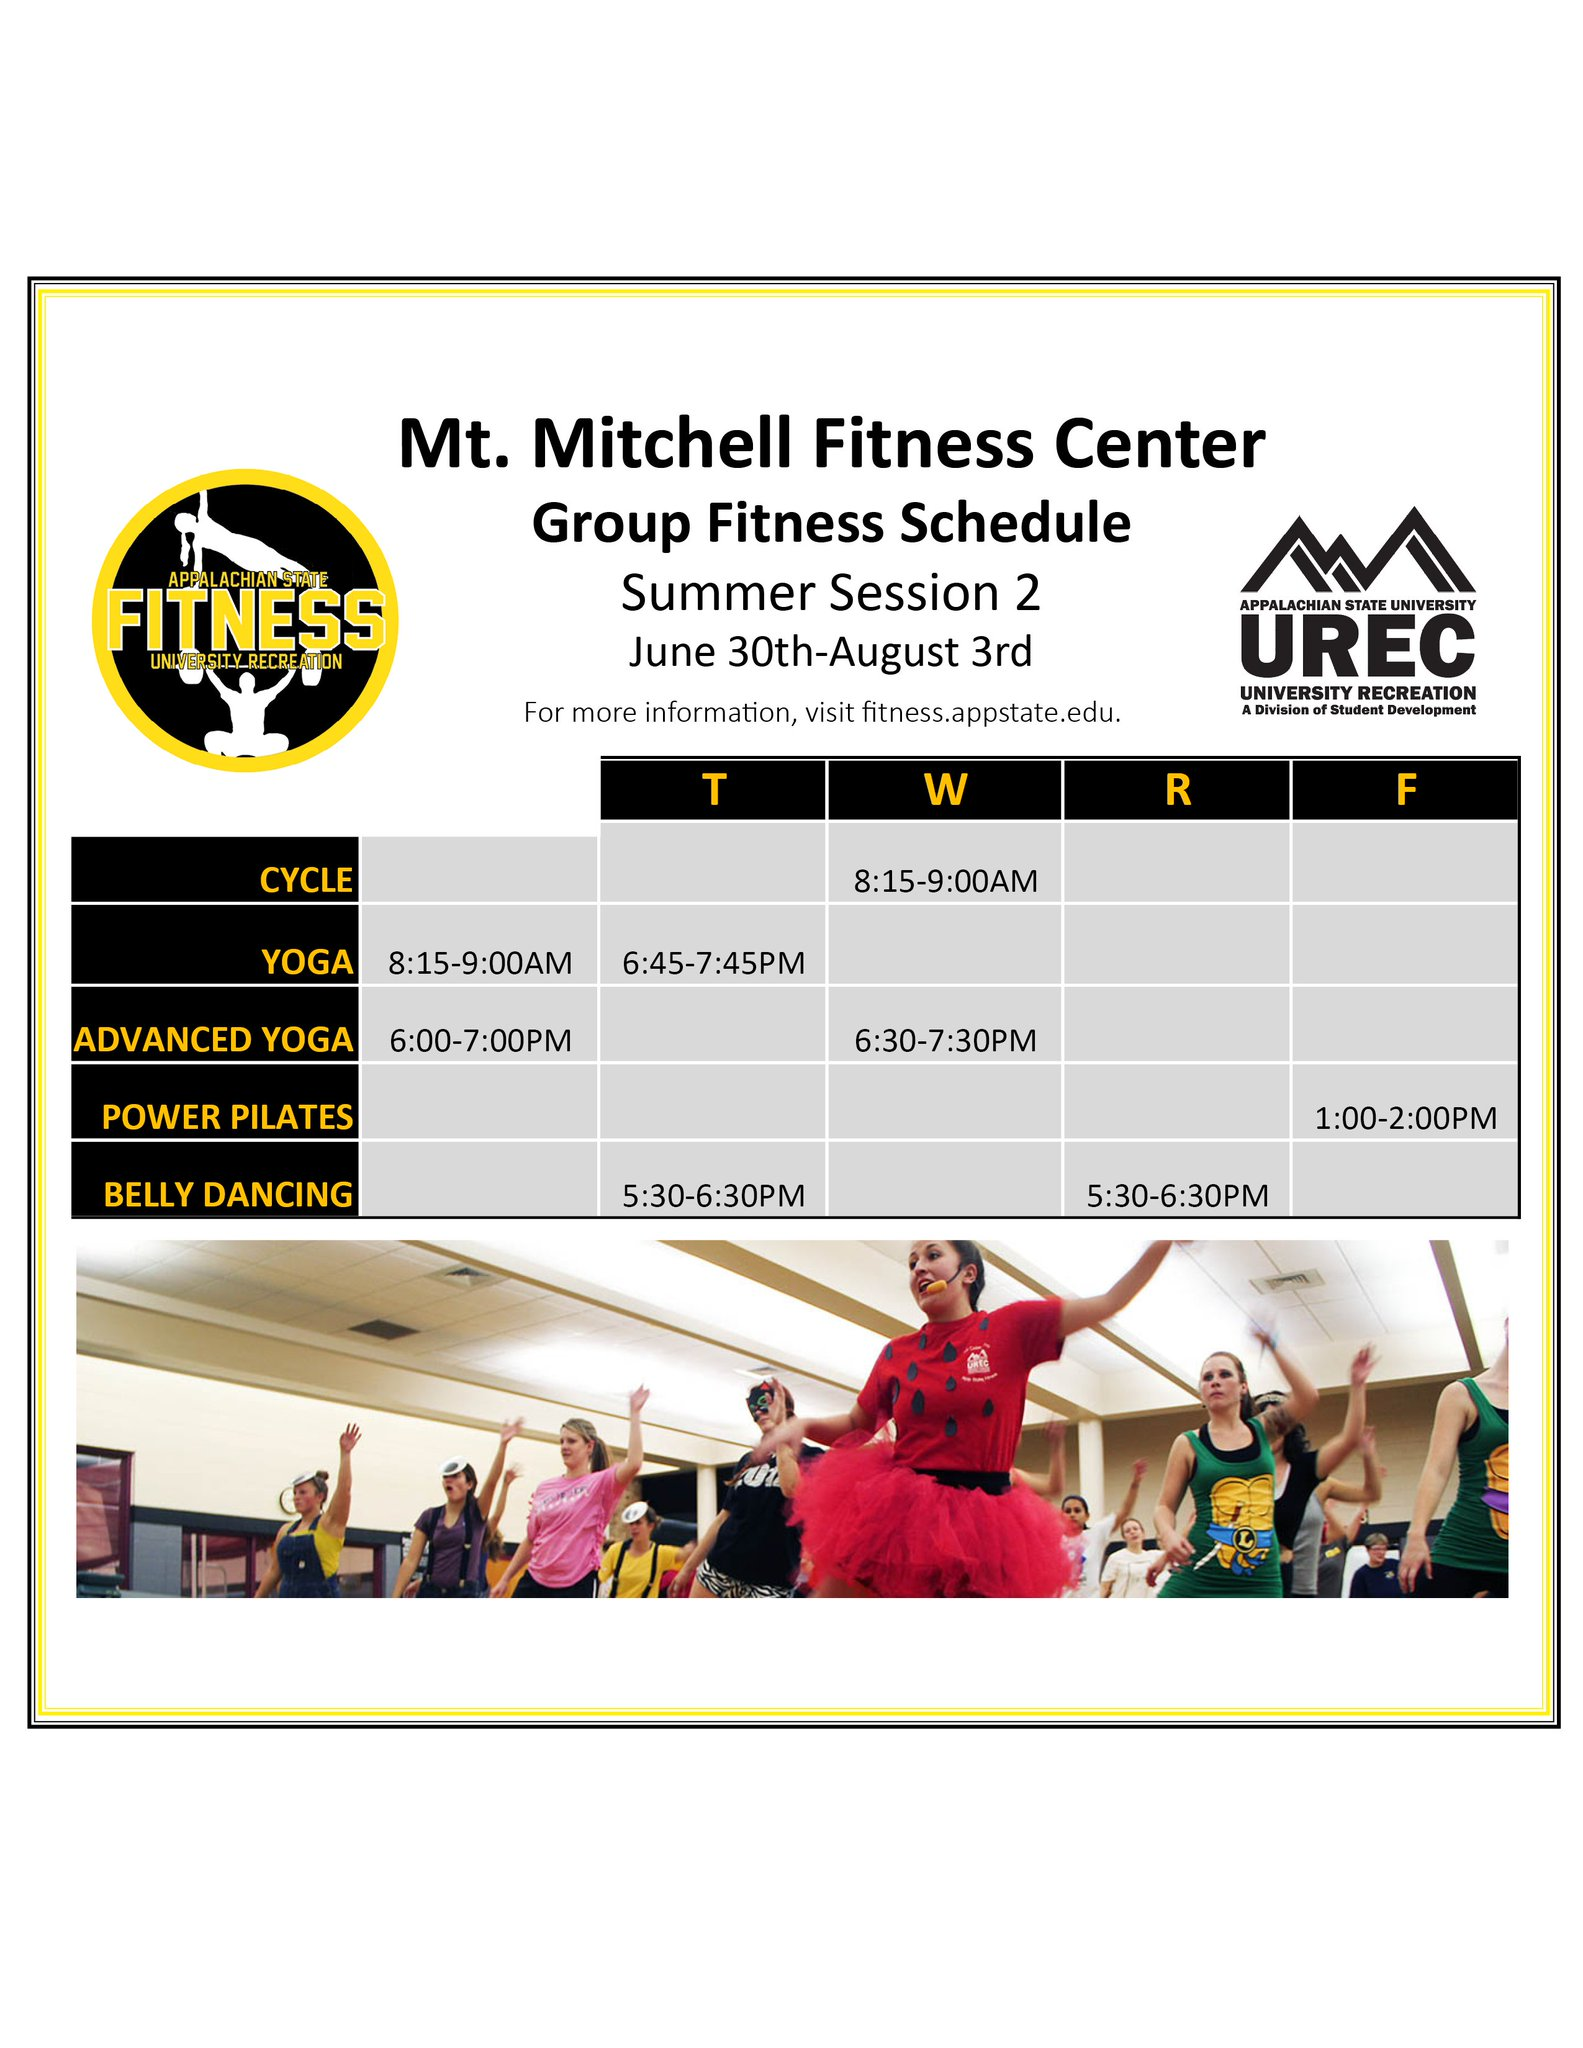 App State Fitness On Twitter Mt Mitchell Has A Group Fitness Class For Every Day Of The Week Don T Miss Out On All Of The Fun Groupfitness